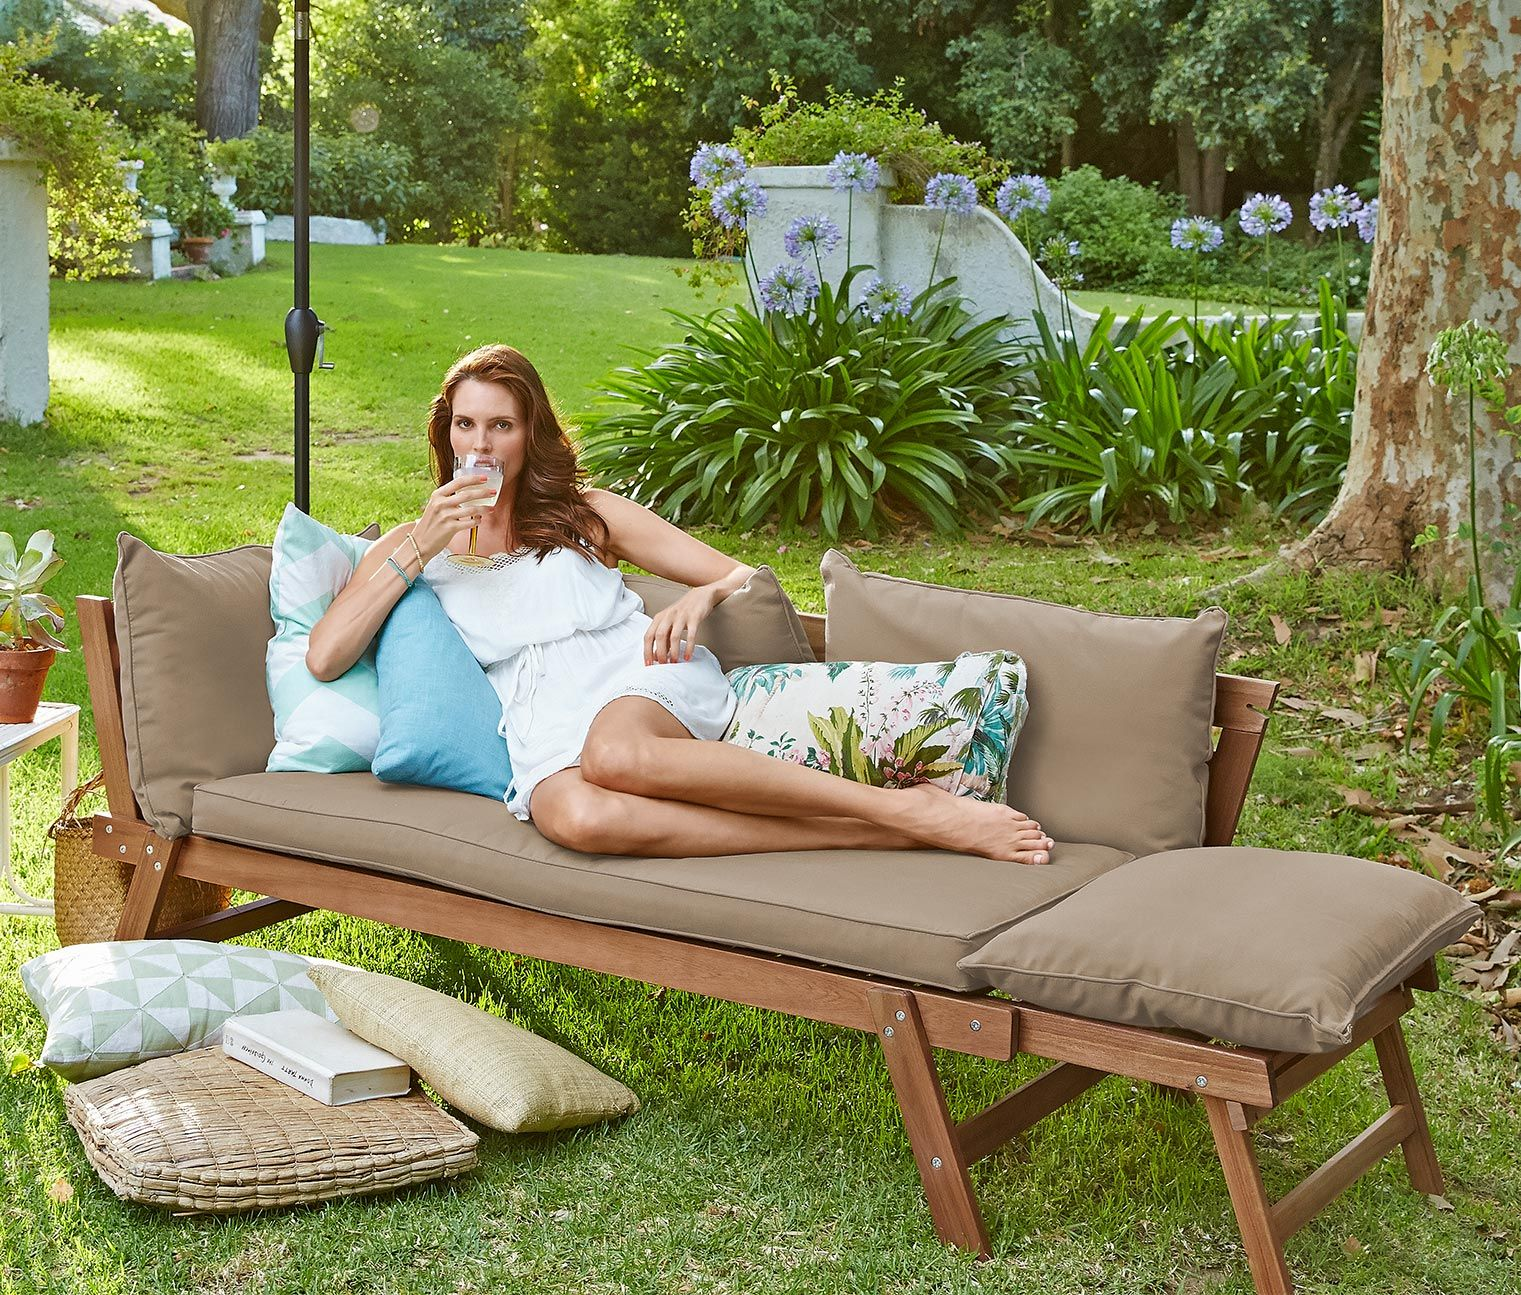 Daybed Outdoor Tchibo Daybed Garden Furniture Daybed Garden Furniture